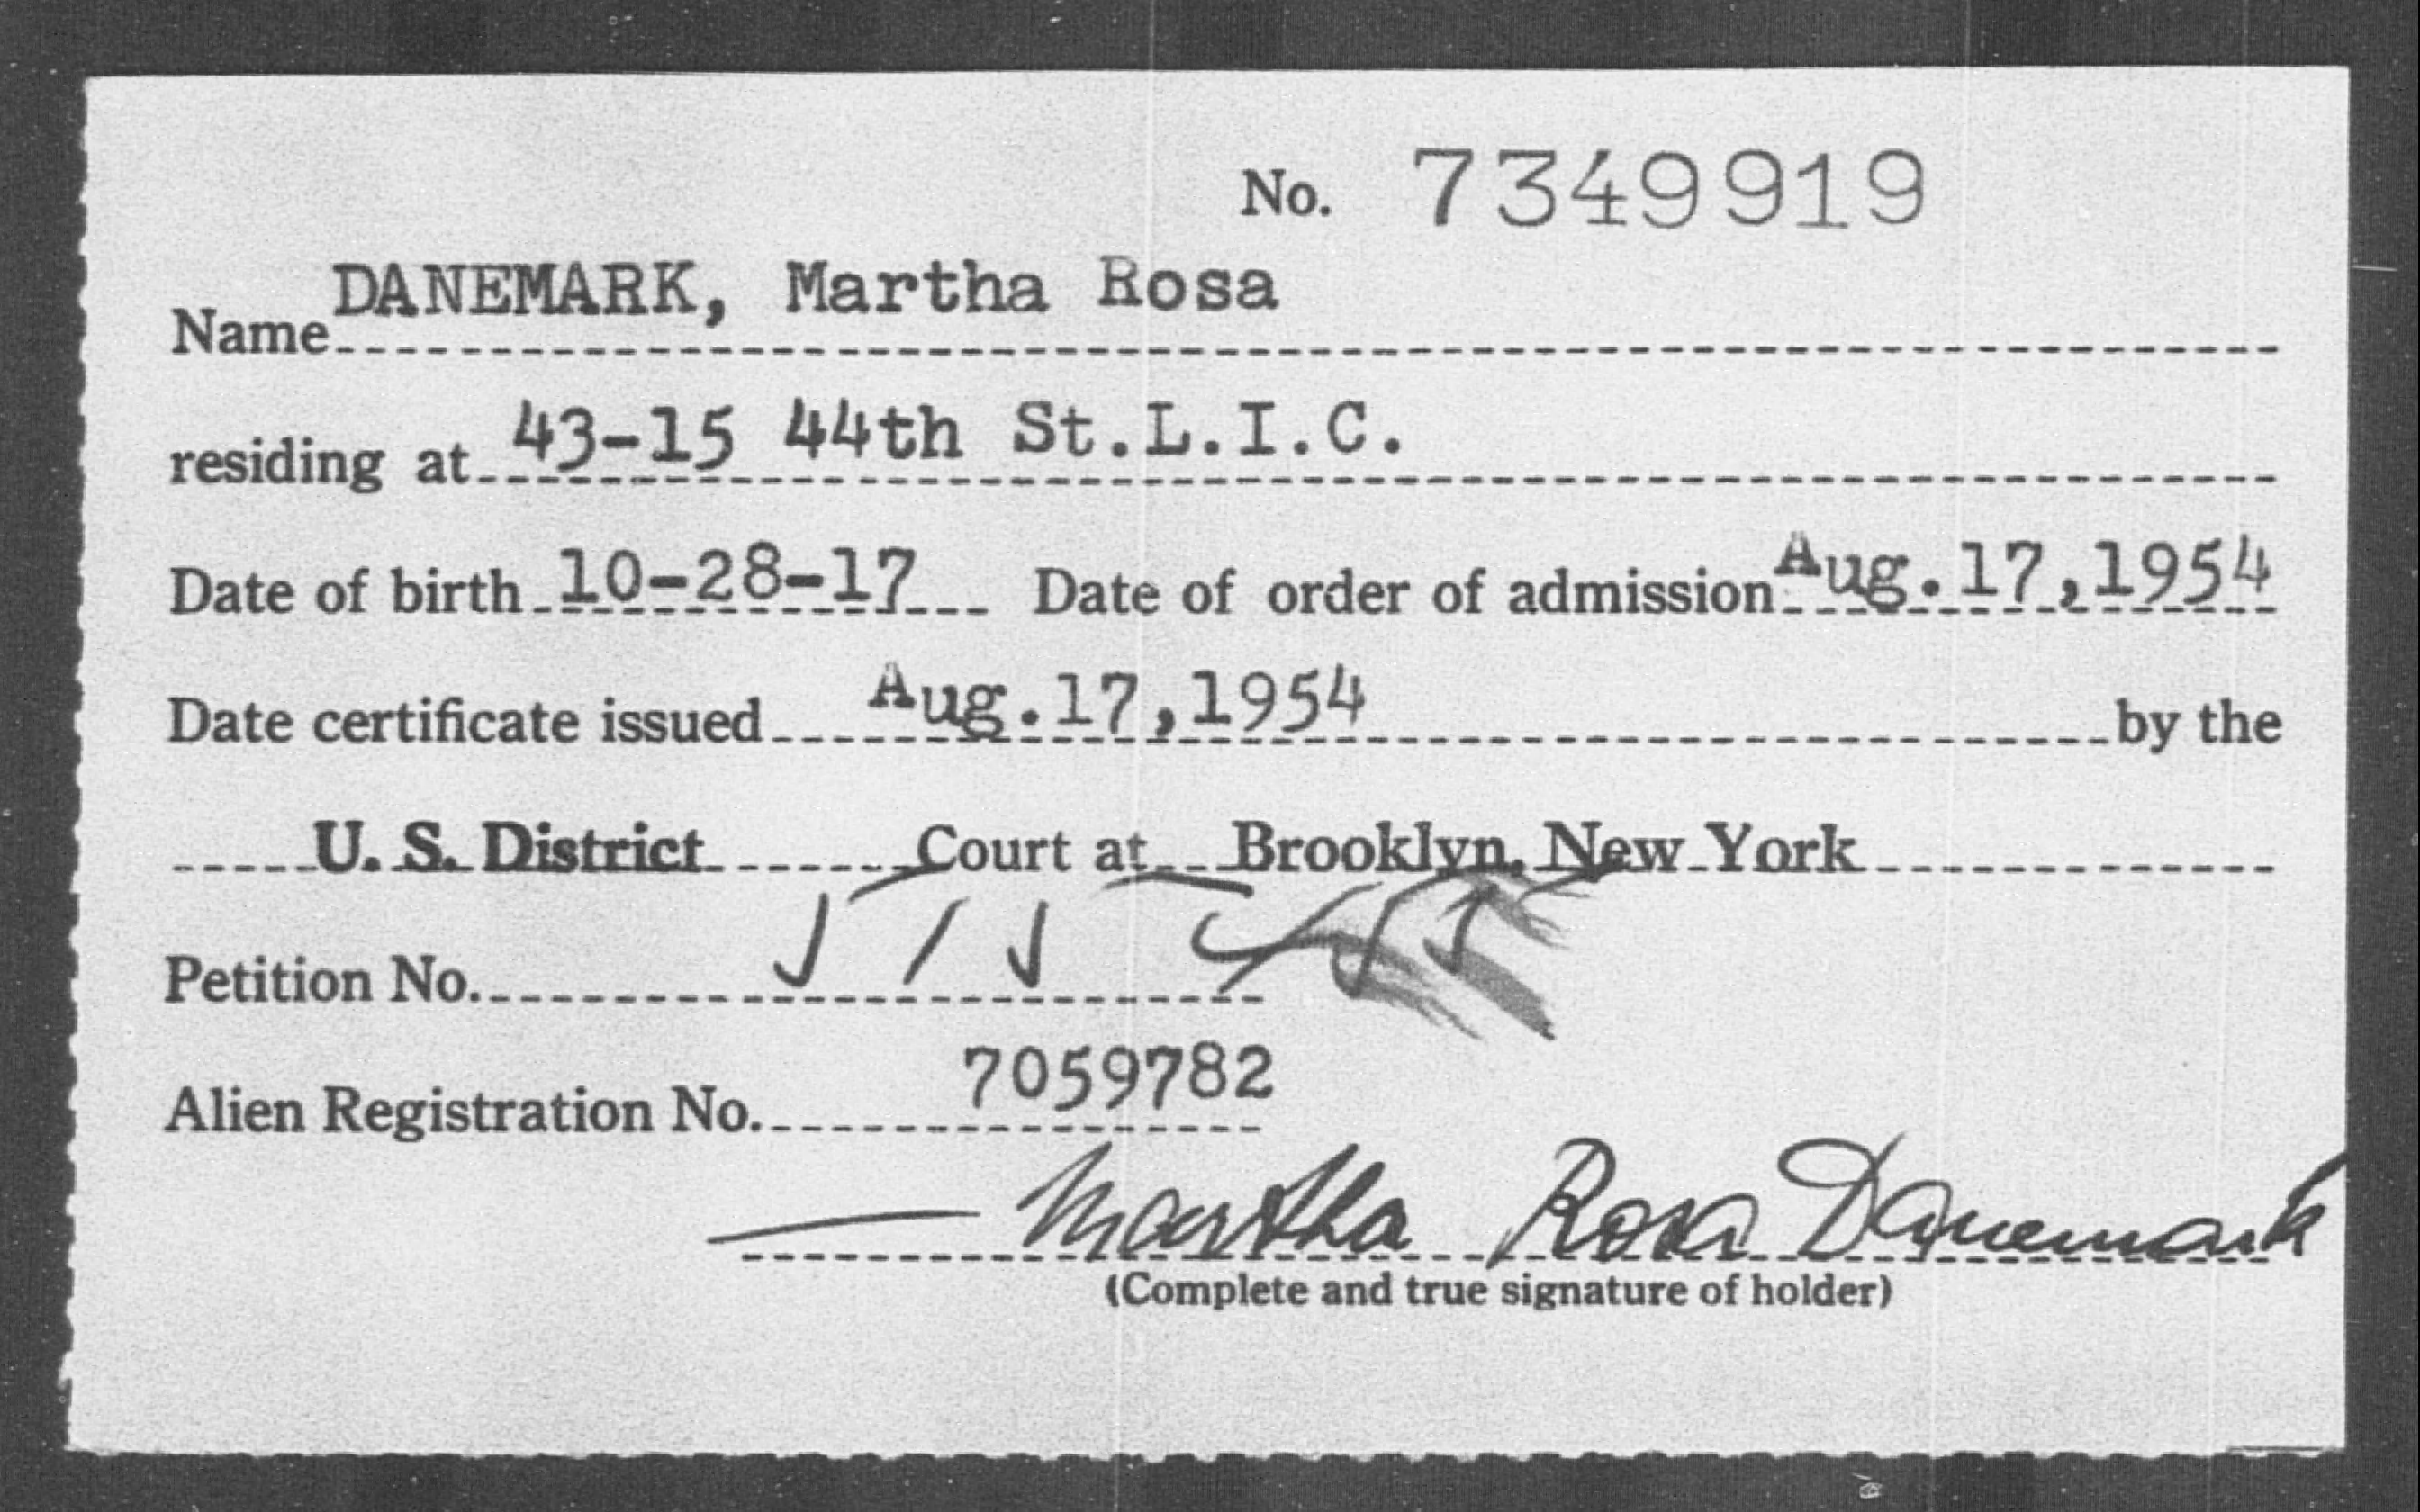 DANEMARK, Martha Rosa - Born: 1917, Naturalized: 1954